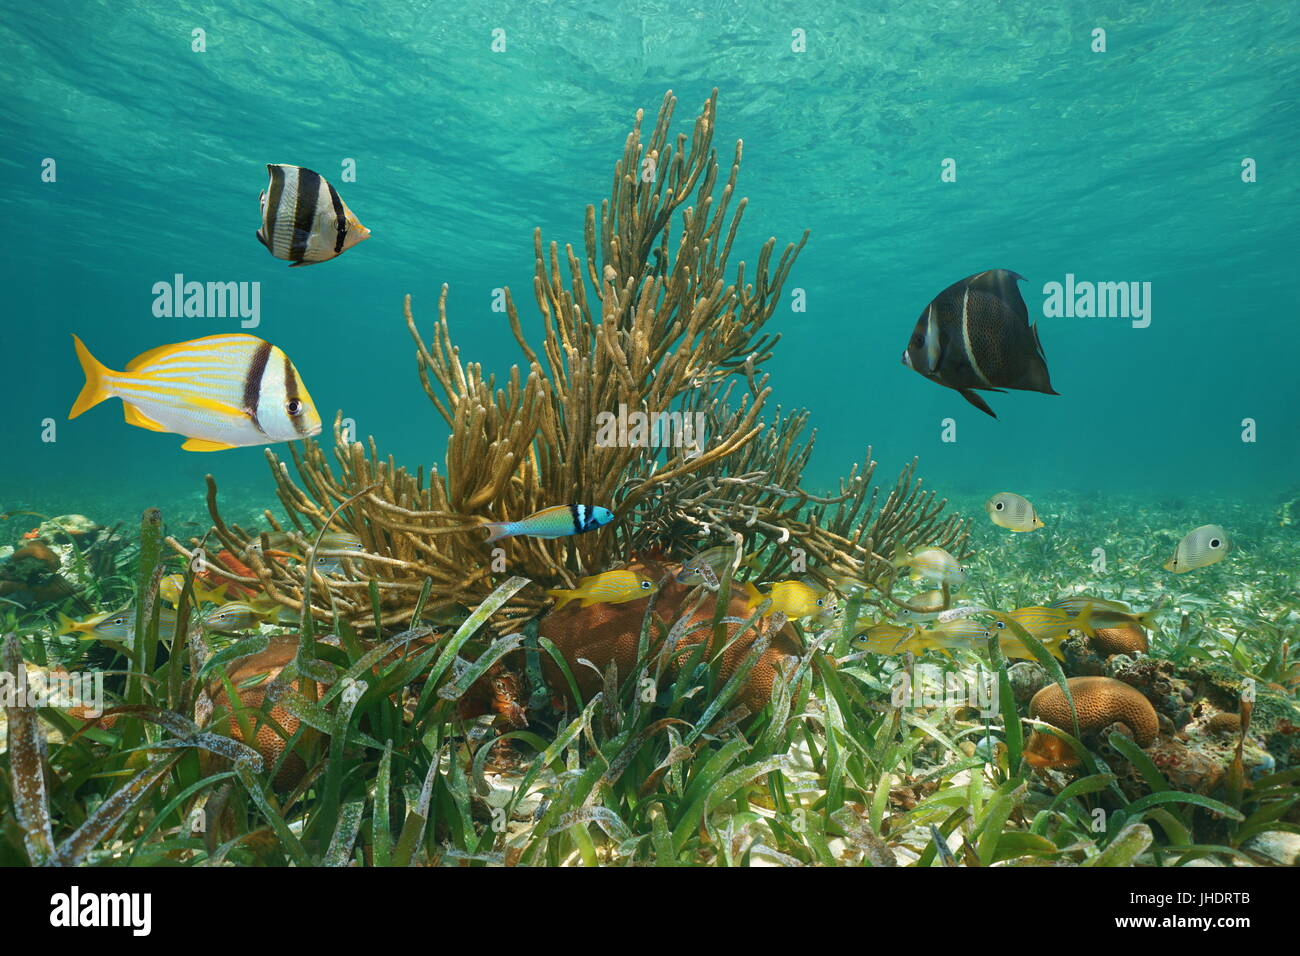 Underwater marine life with fish and coral in the Caribbean sea, Greater Antilles, Cuba Stock Photo